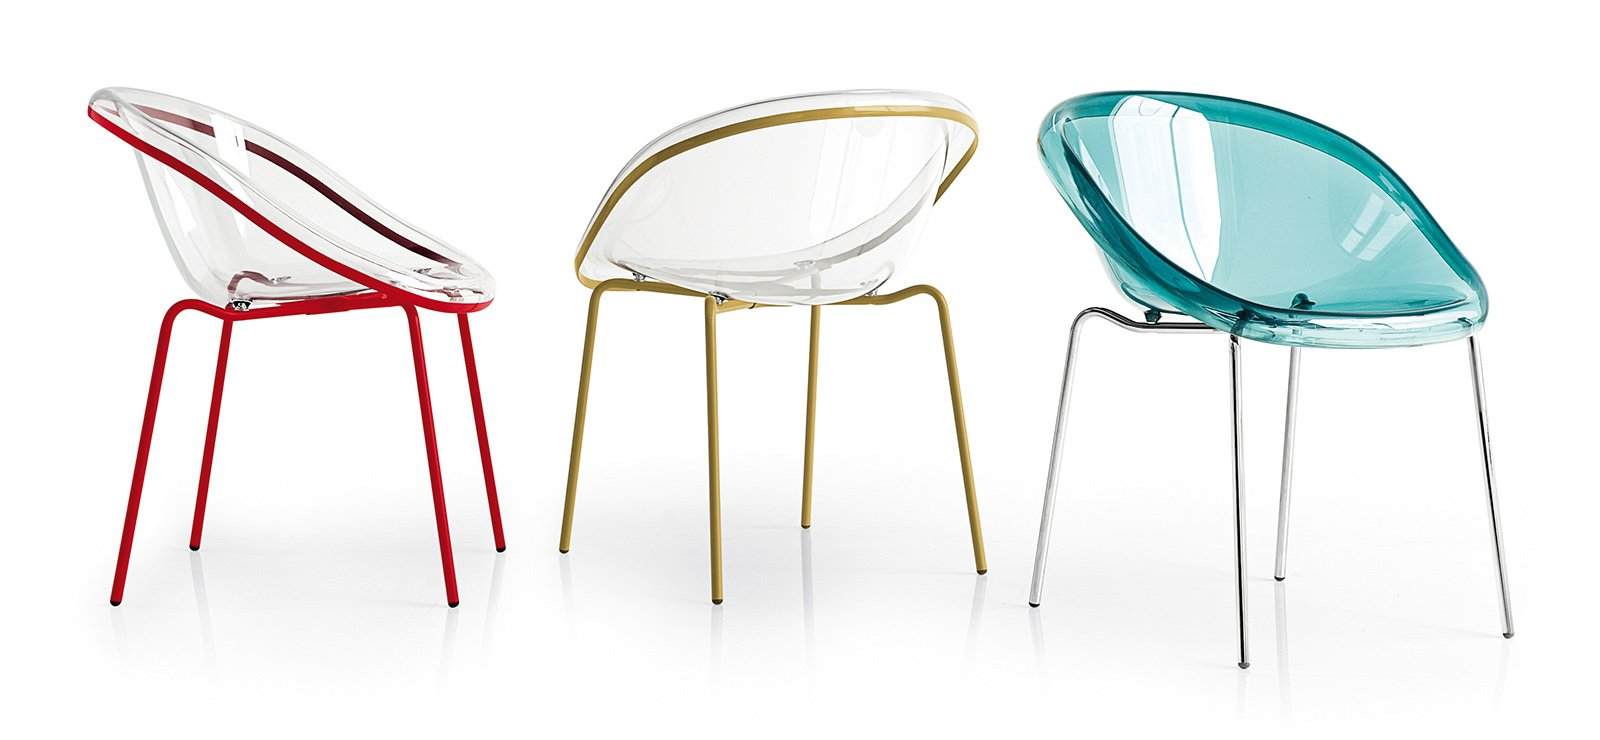 https://cdn.cosedicasa.com/wp-content/uploads/2014/10/Calligaris-BLOOM-sedie-trasparenti.jpg